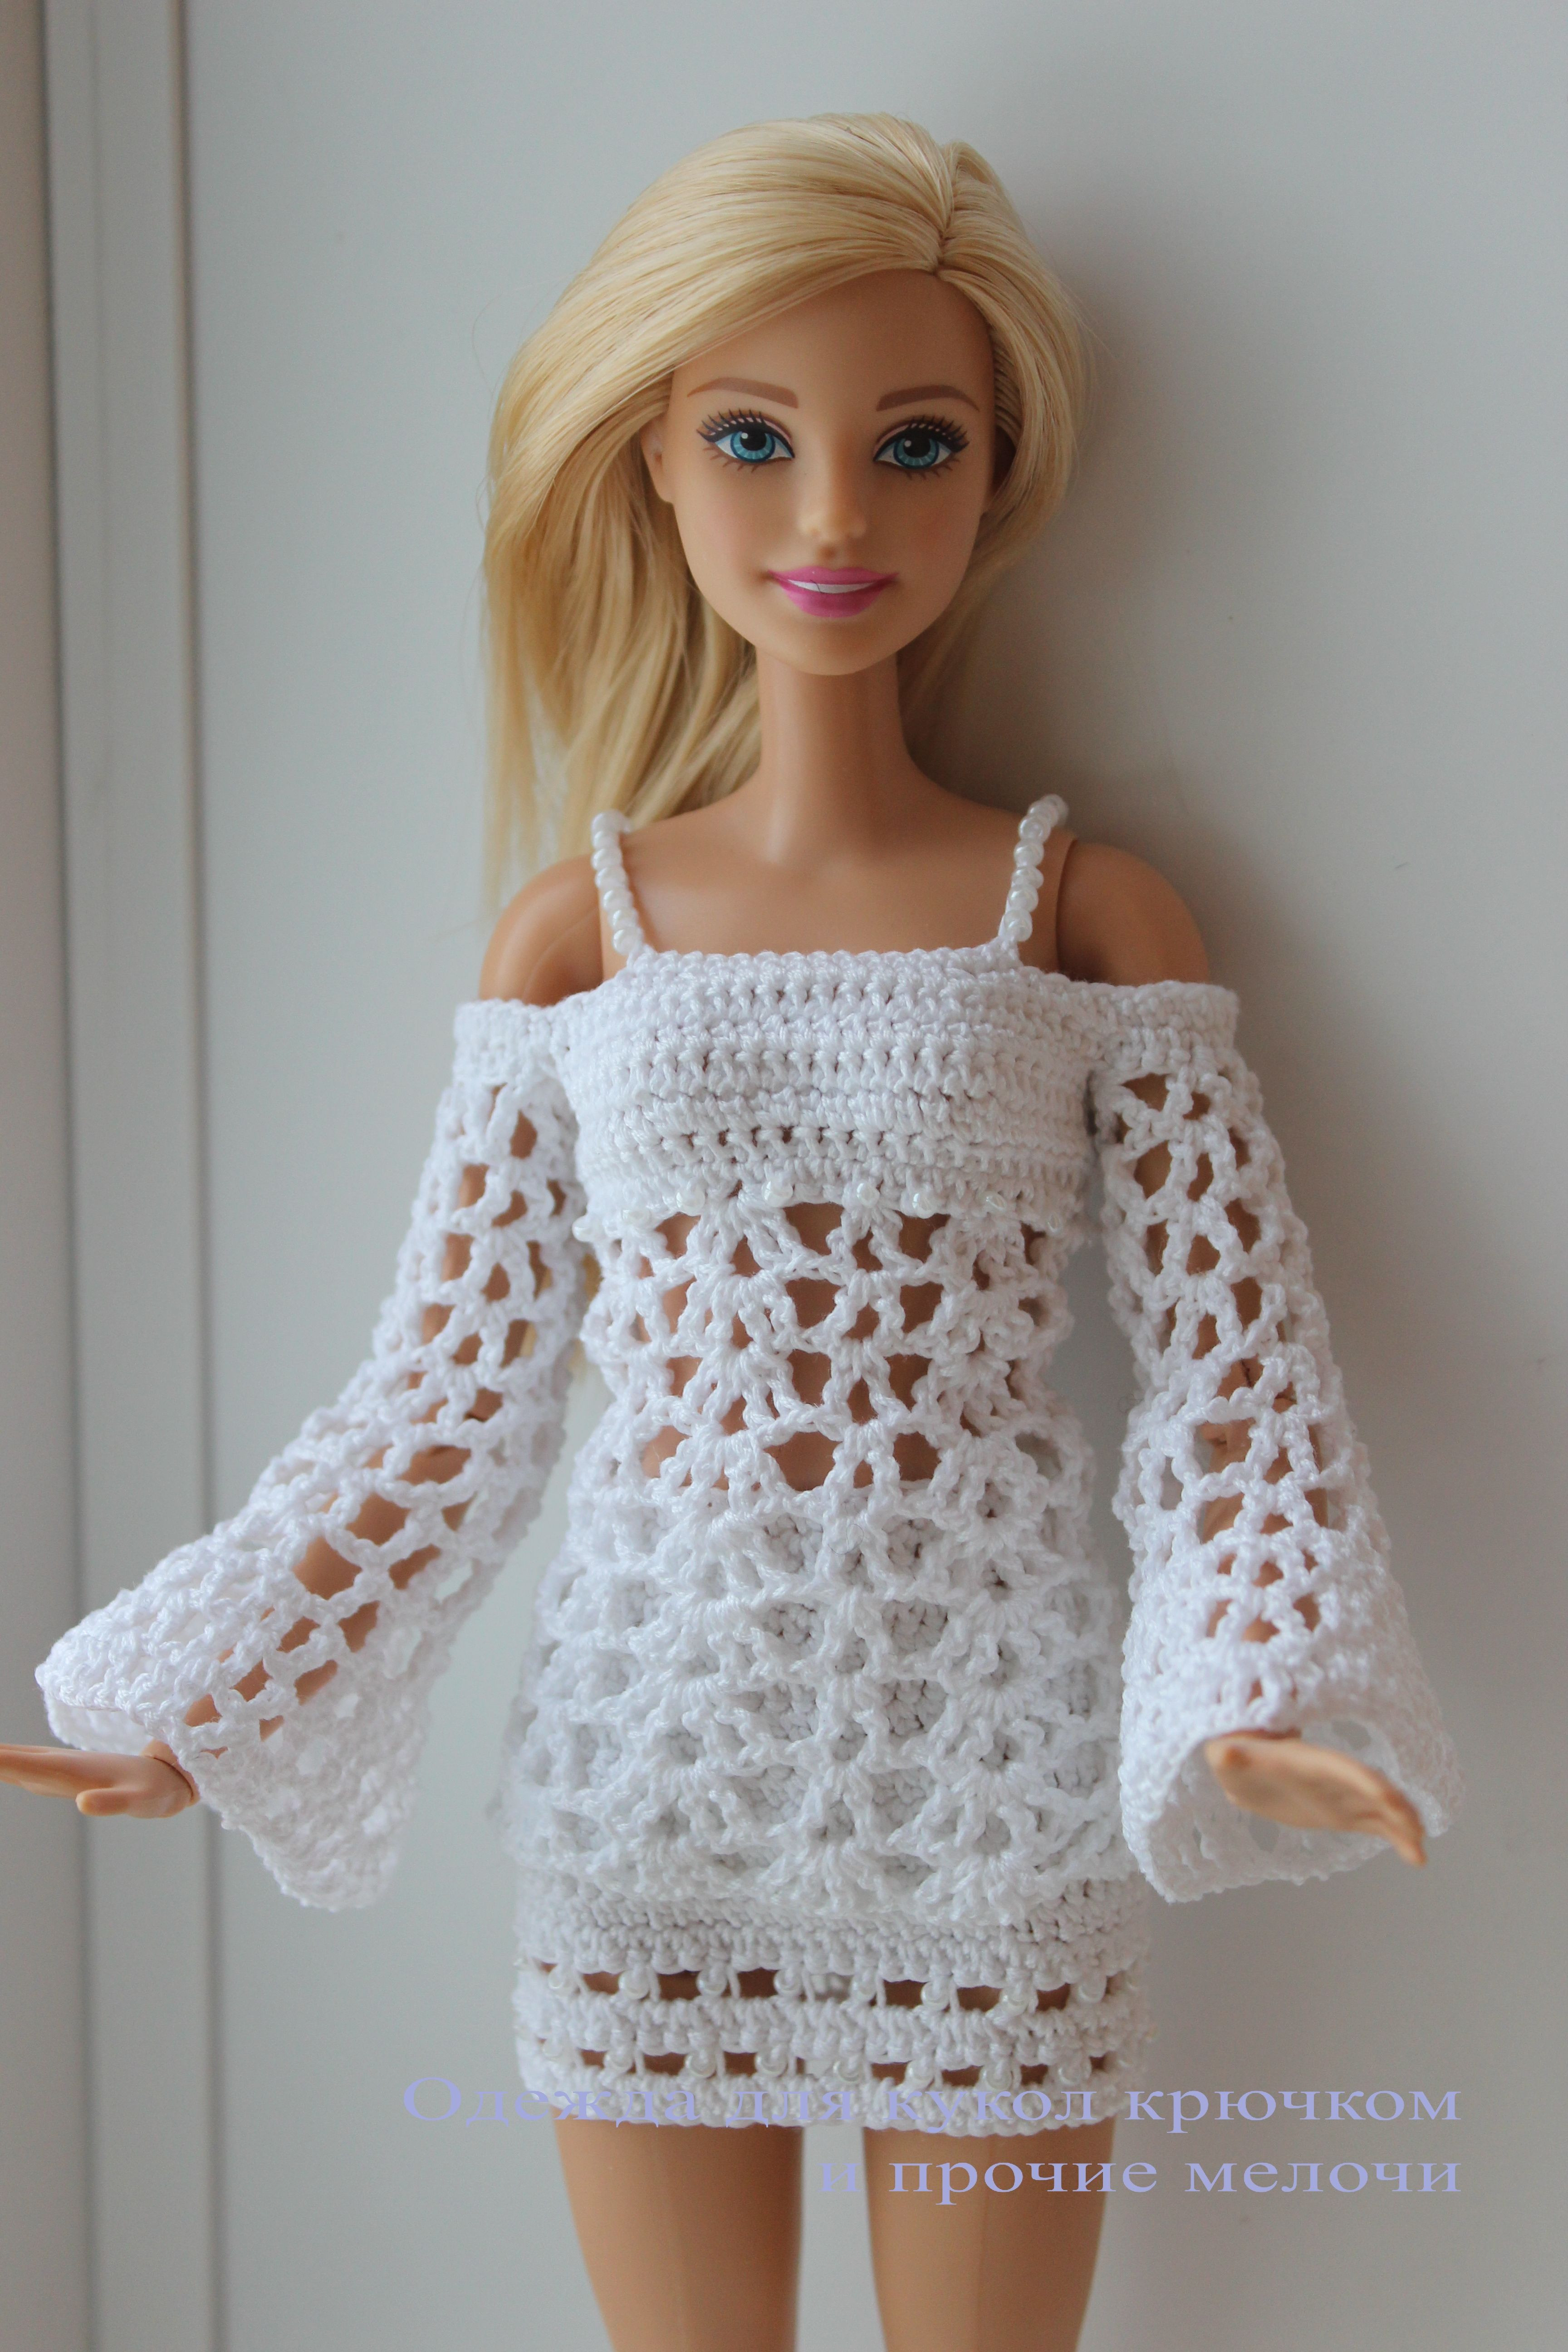 New Little Known Ways to Make Doll Clothes Yourselves Barbie Dress Patterns Of Marvelous 46 Photos Barbie Dress Patterns